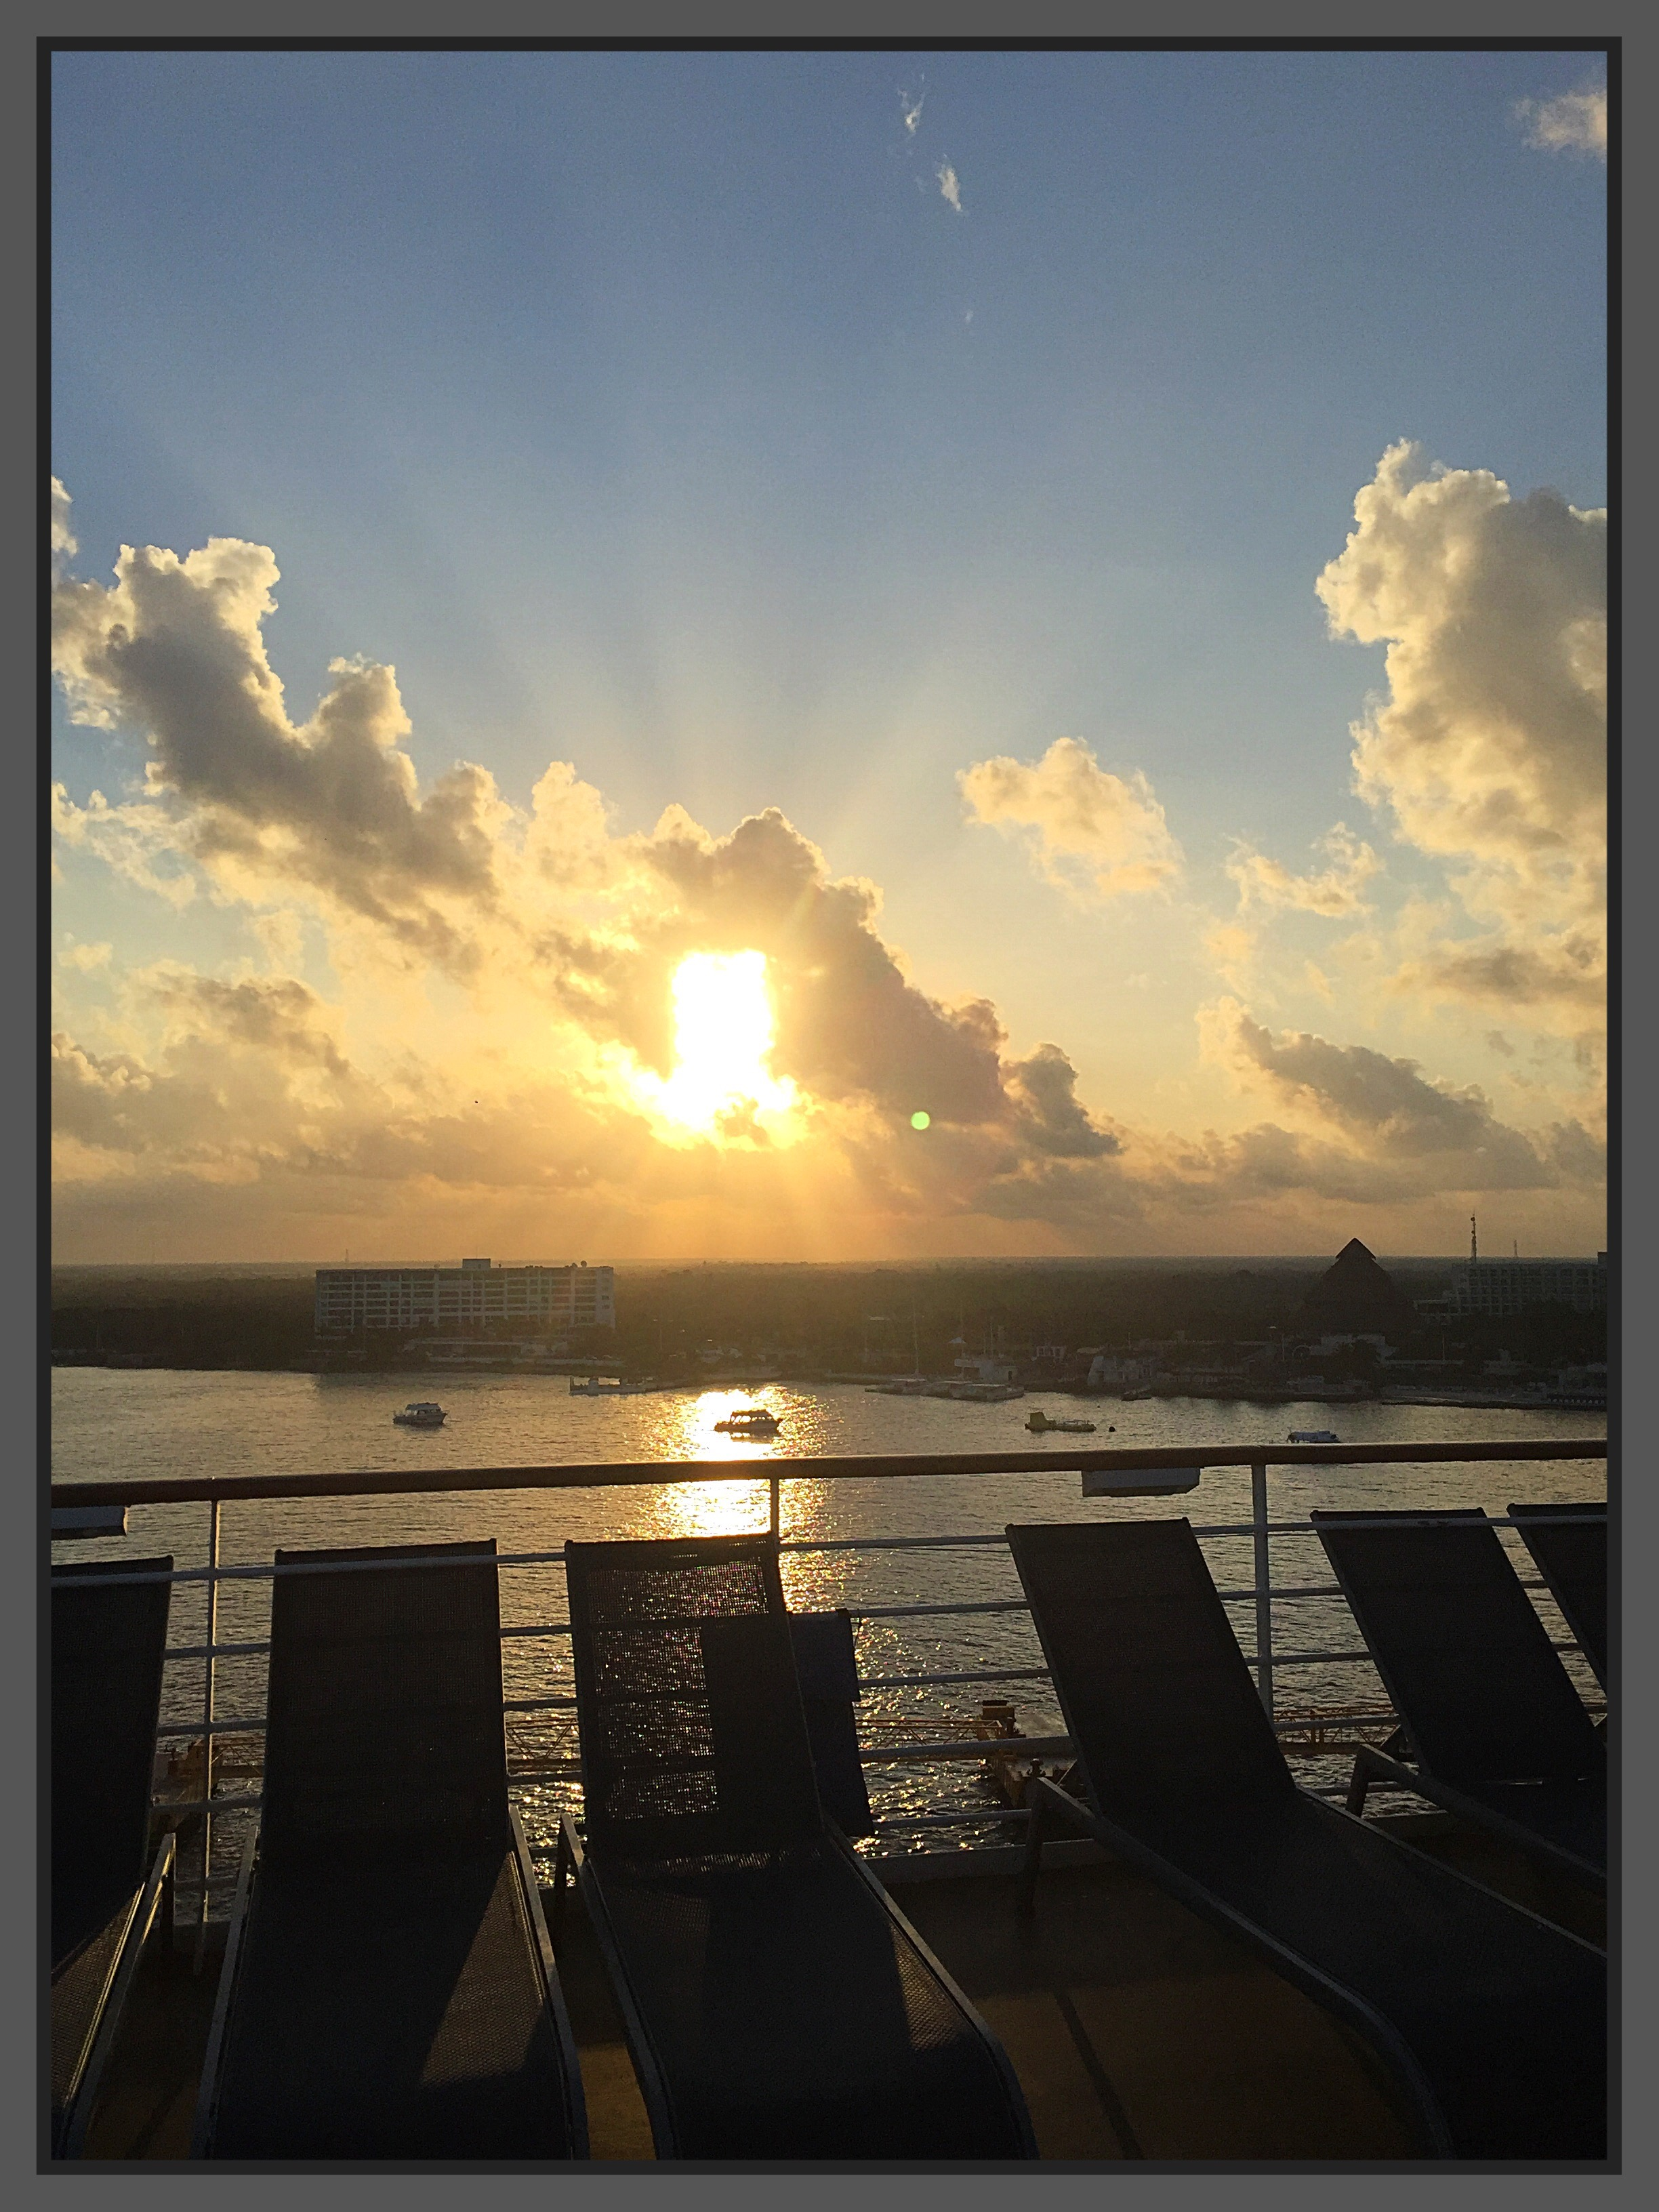 Early Morning Cozumel from Celebrity Constellation